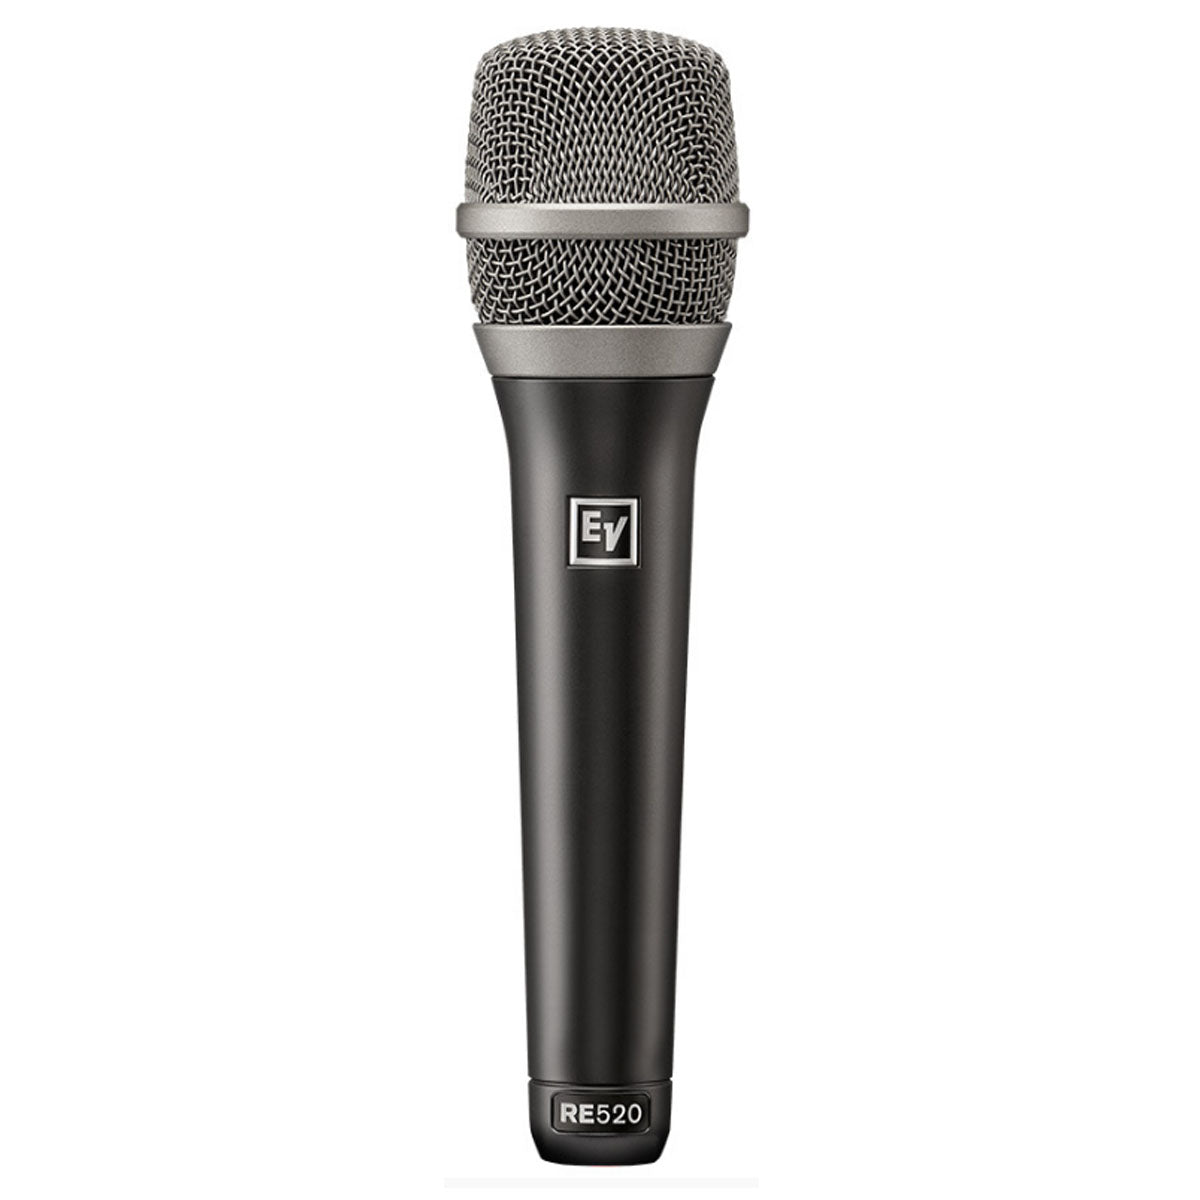 Electro-Voice RE520 Microphone Condenser Supercardioid Vocal Mic